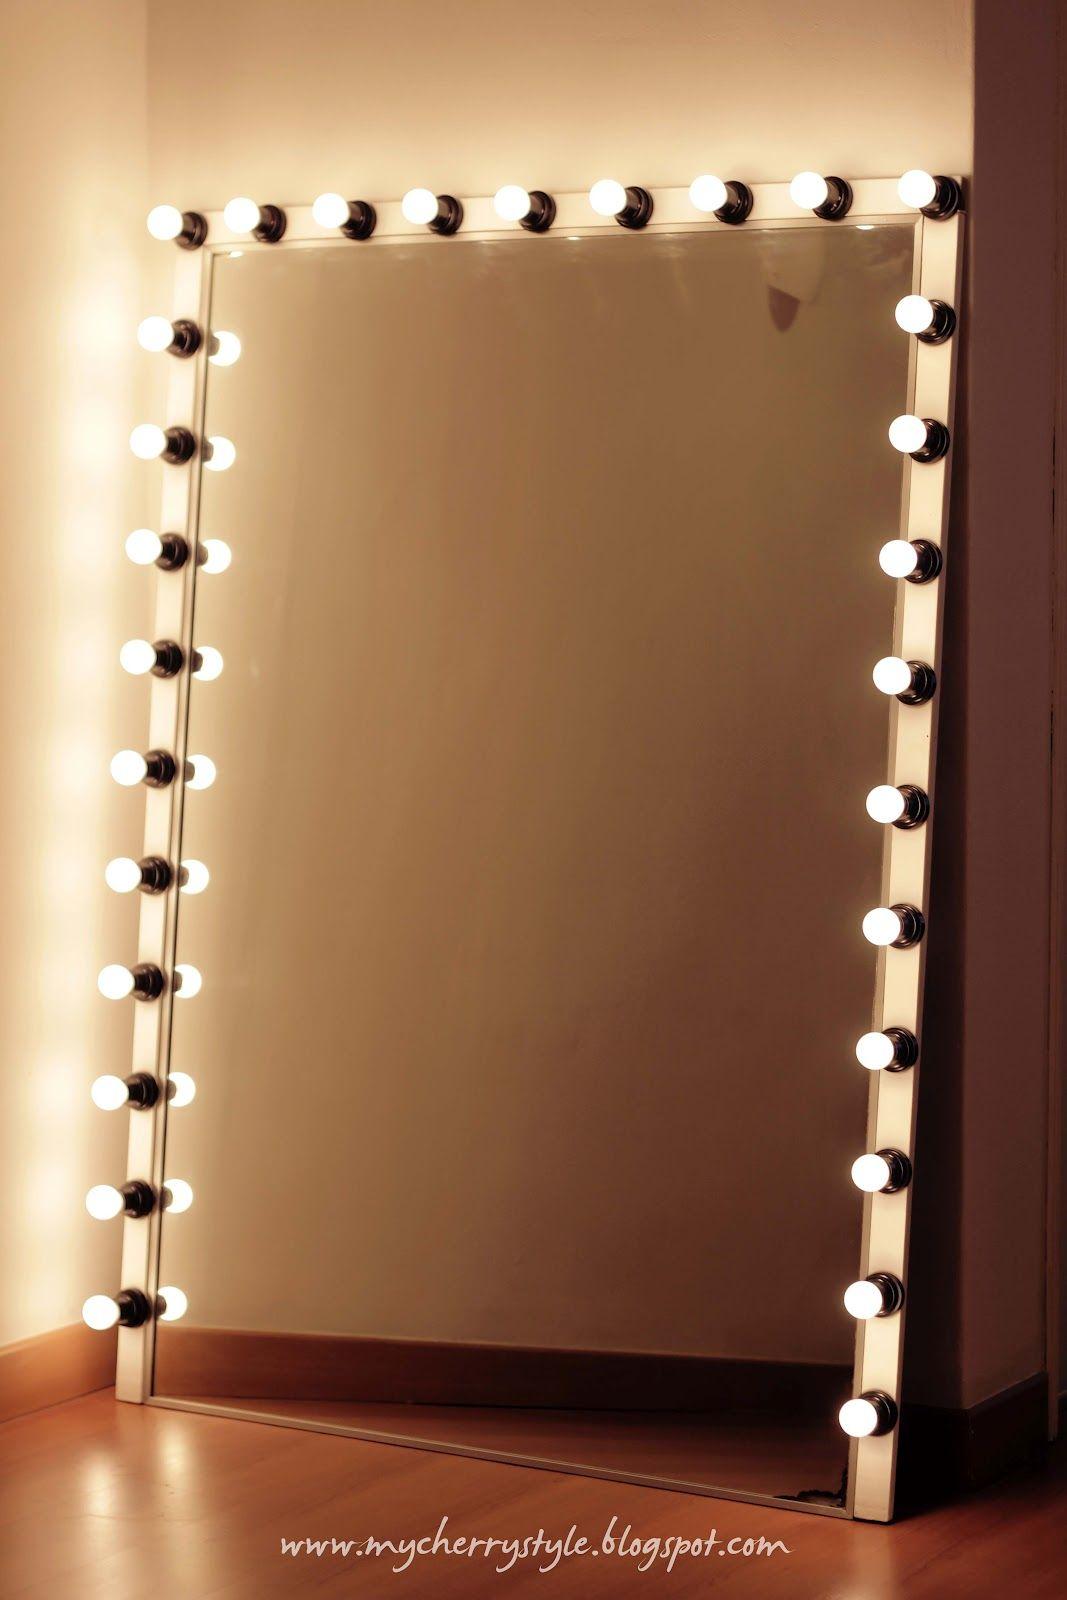 Big Vanity Mirror With Lights New Diy Hollywoodstyle Mirror With Lights Tutorial From Scratchfor 2018